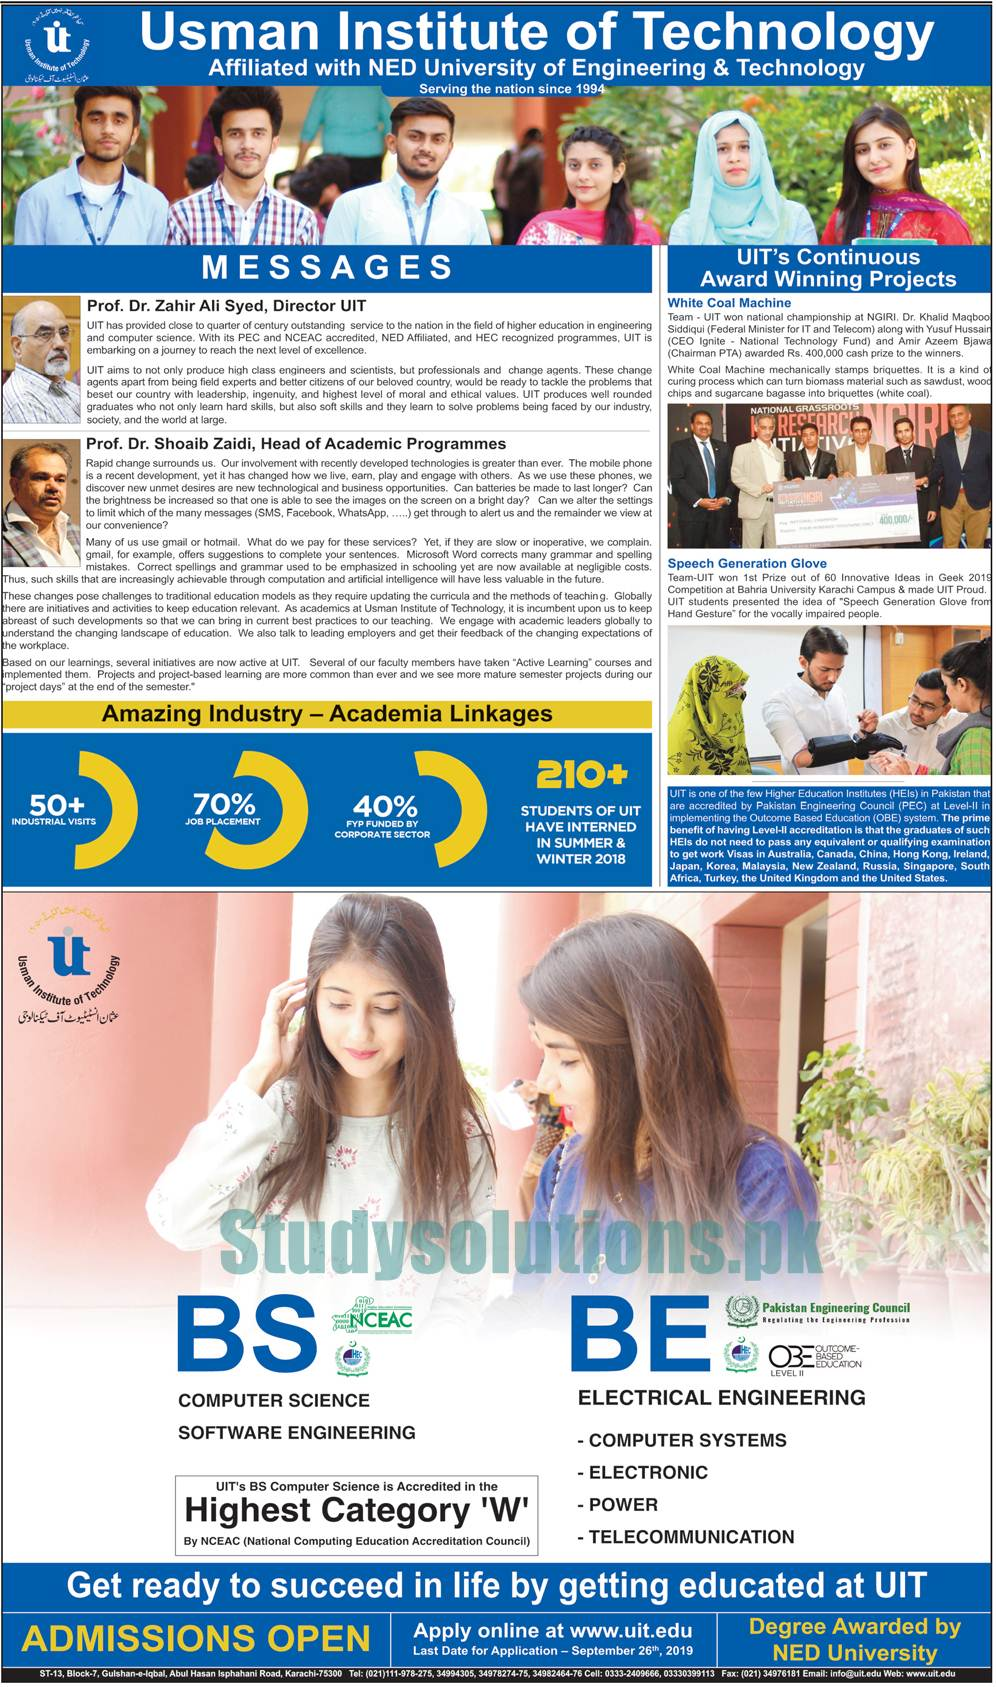 Usman Institute Of Technology Karachi BS & BE Admission 2019